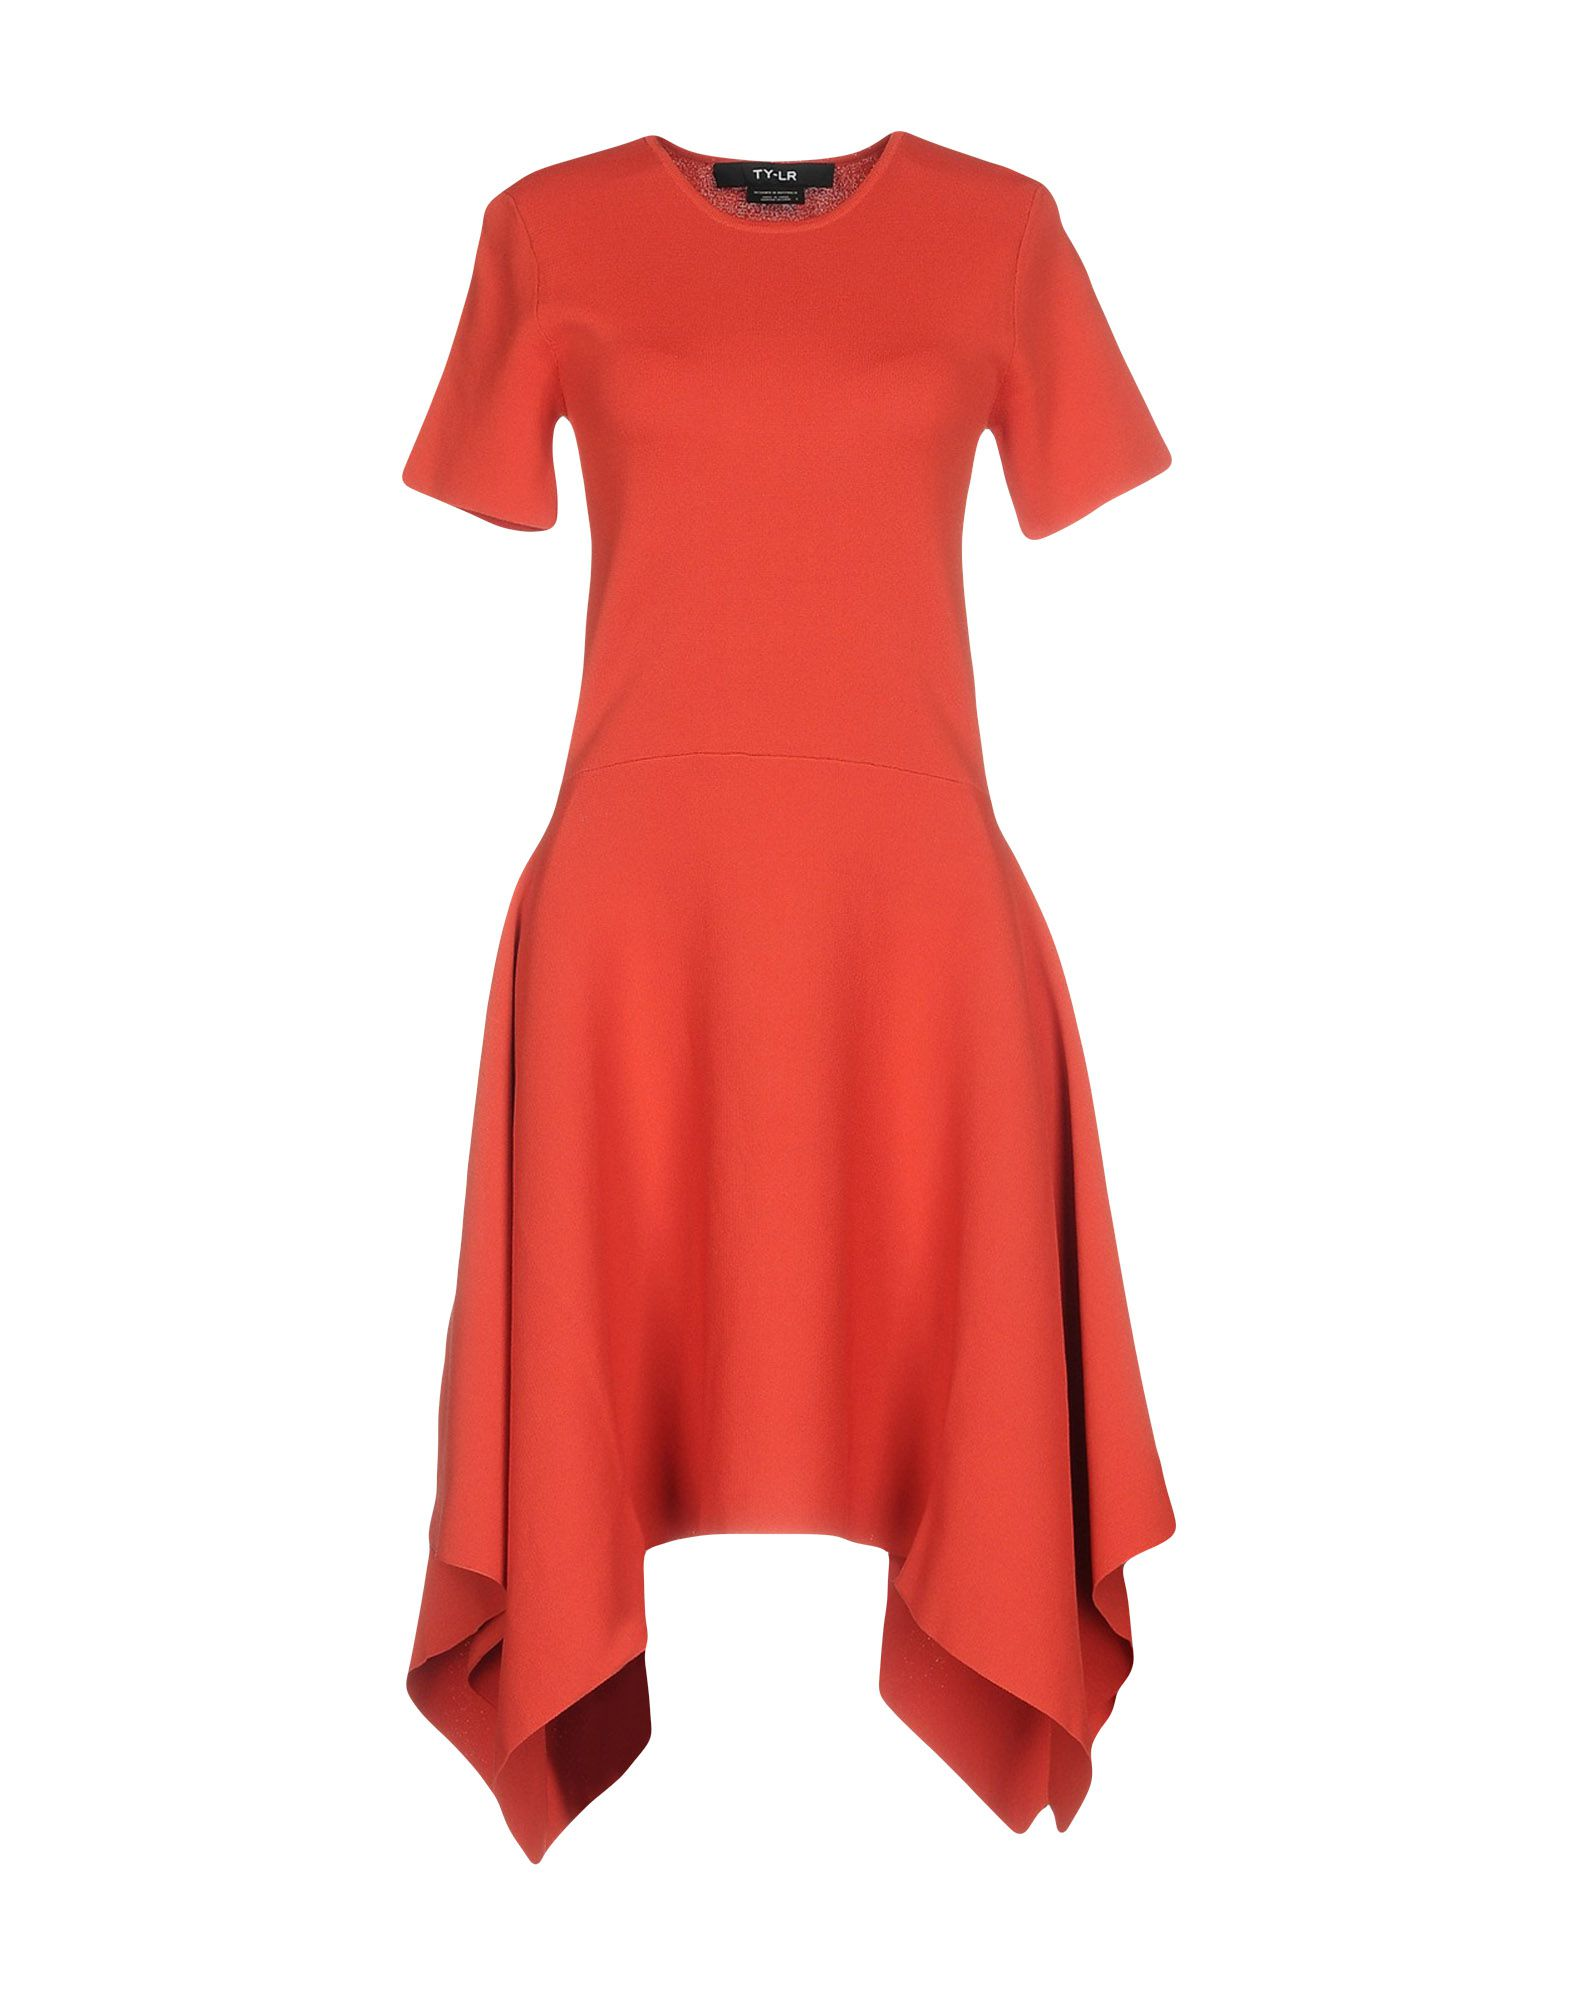 TY-LR Evening Dress in Red